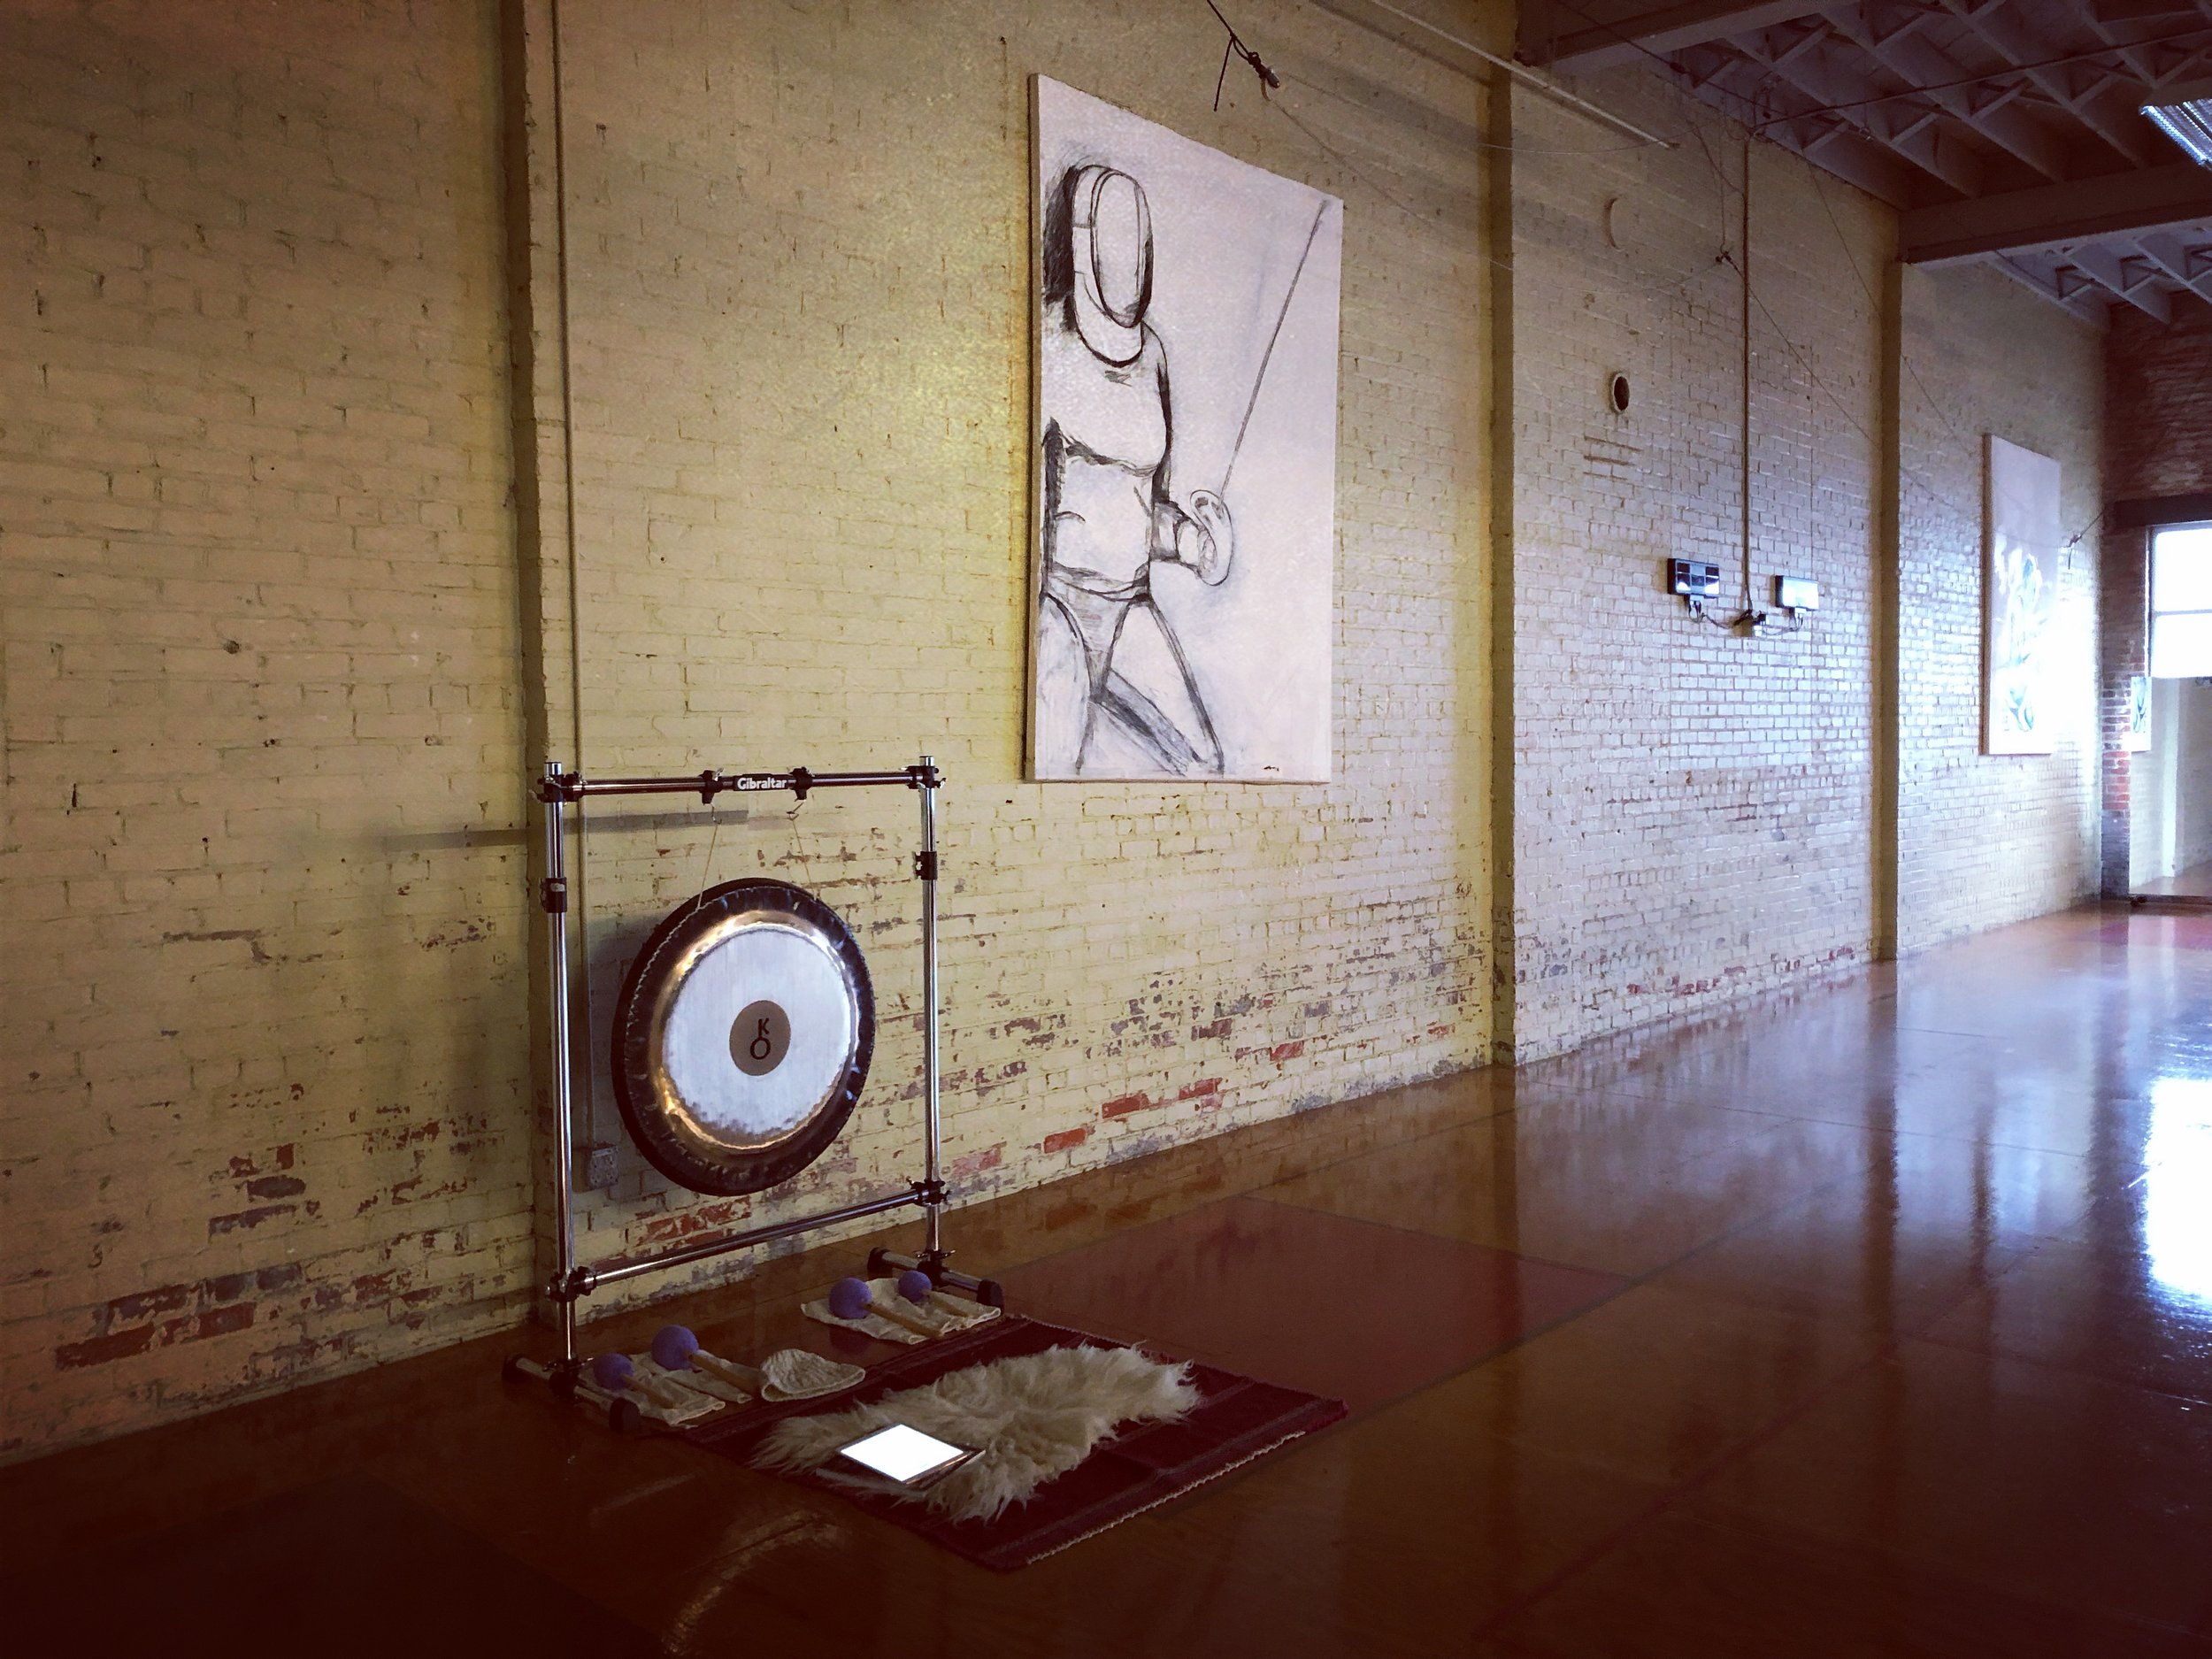 Thursday Kundalini Yoga Classes   at Mid-South Fencers' Club from 9:00am to 10:15am  125 N. Gregson Street, Durham, NC 27701  downtown next to Rose's Meats & Sweets in the Brightleaf District